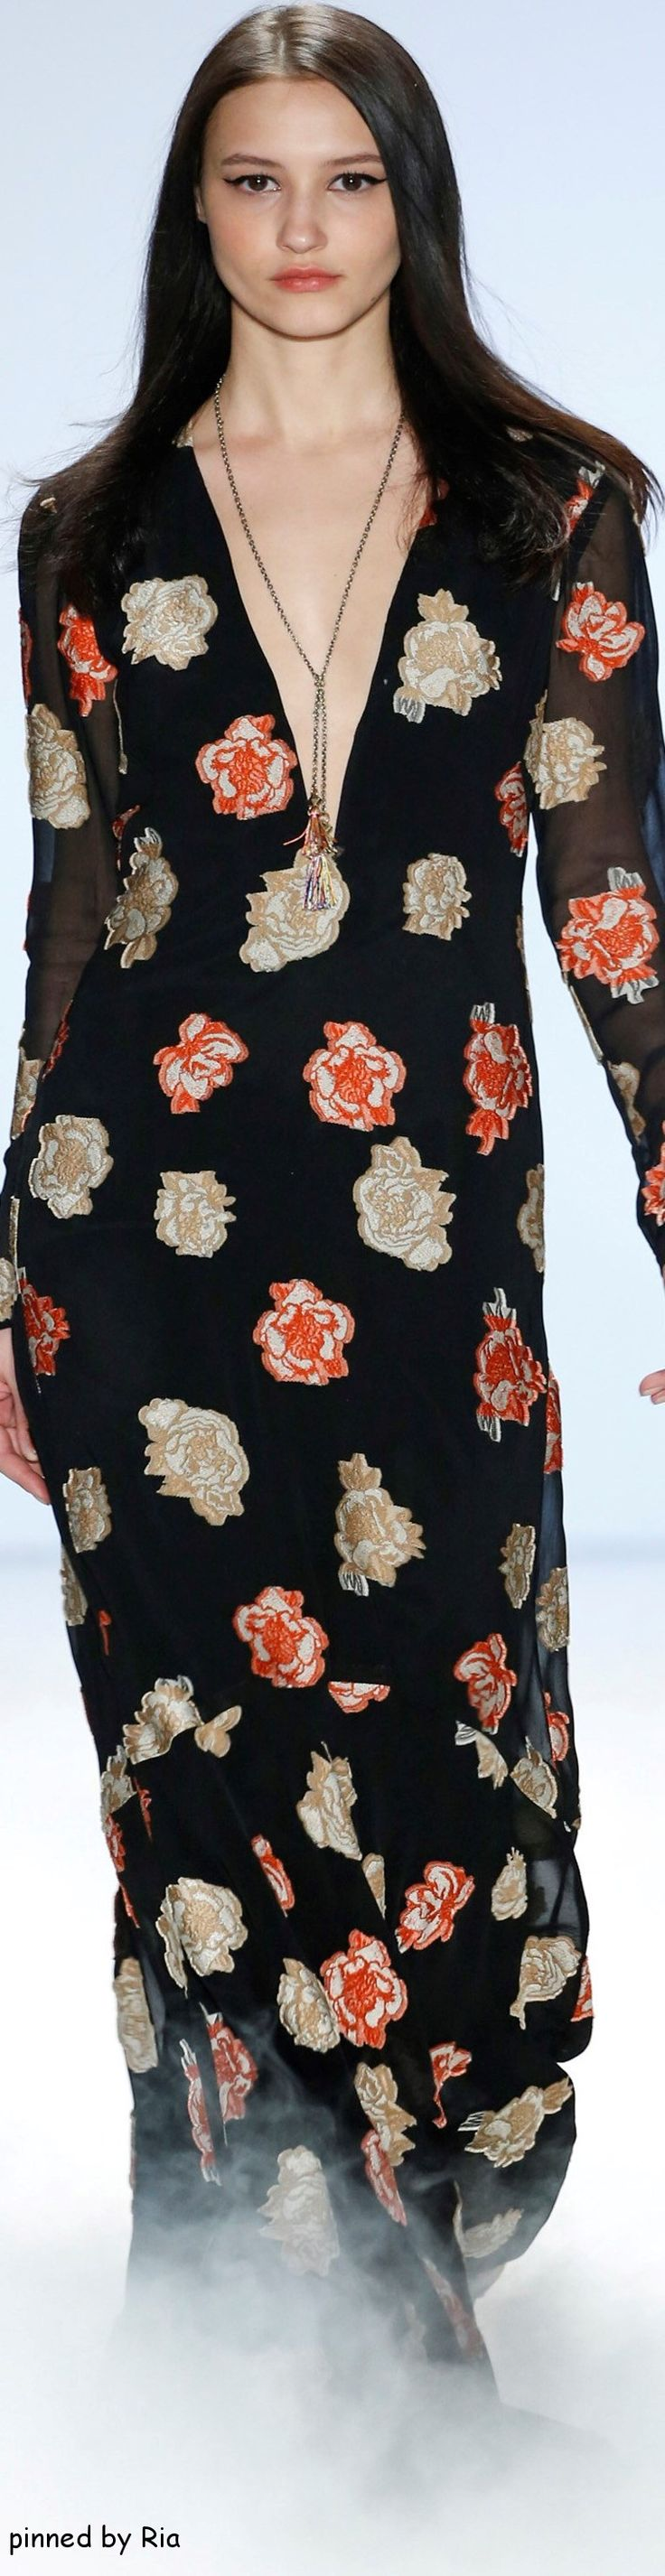 women fashion outfit clothing style apparel @roressclothes closet ideas Nicole Miller Fall 2016 RTW l Ria